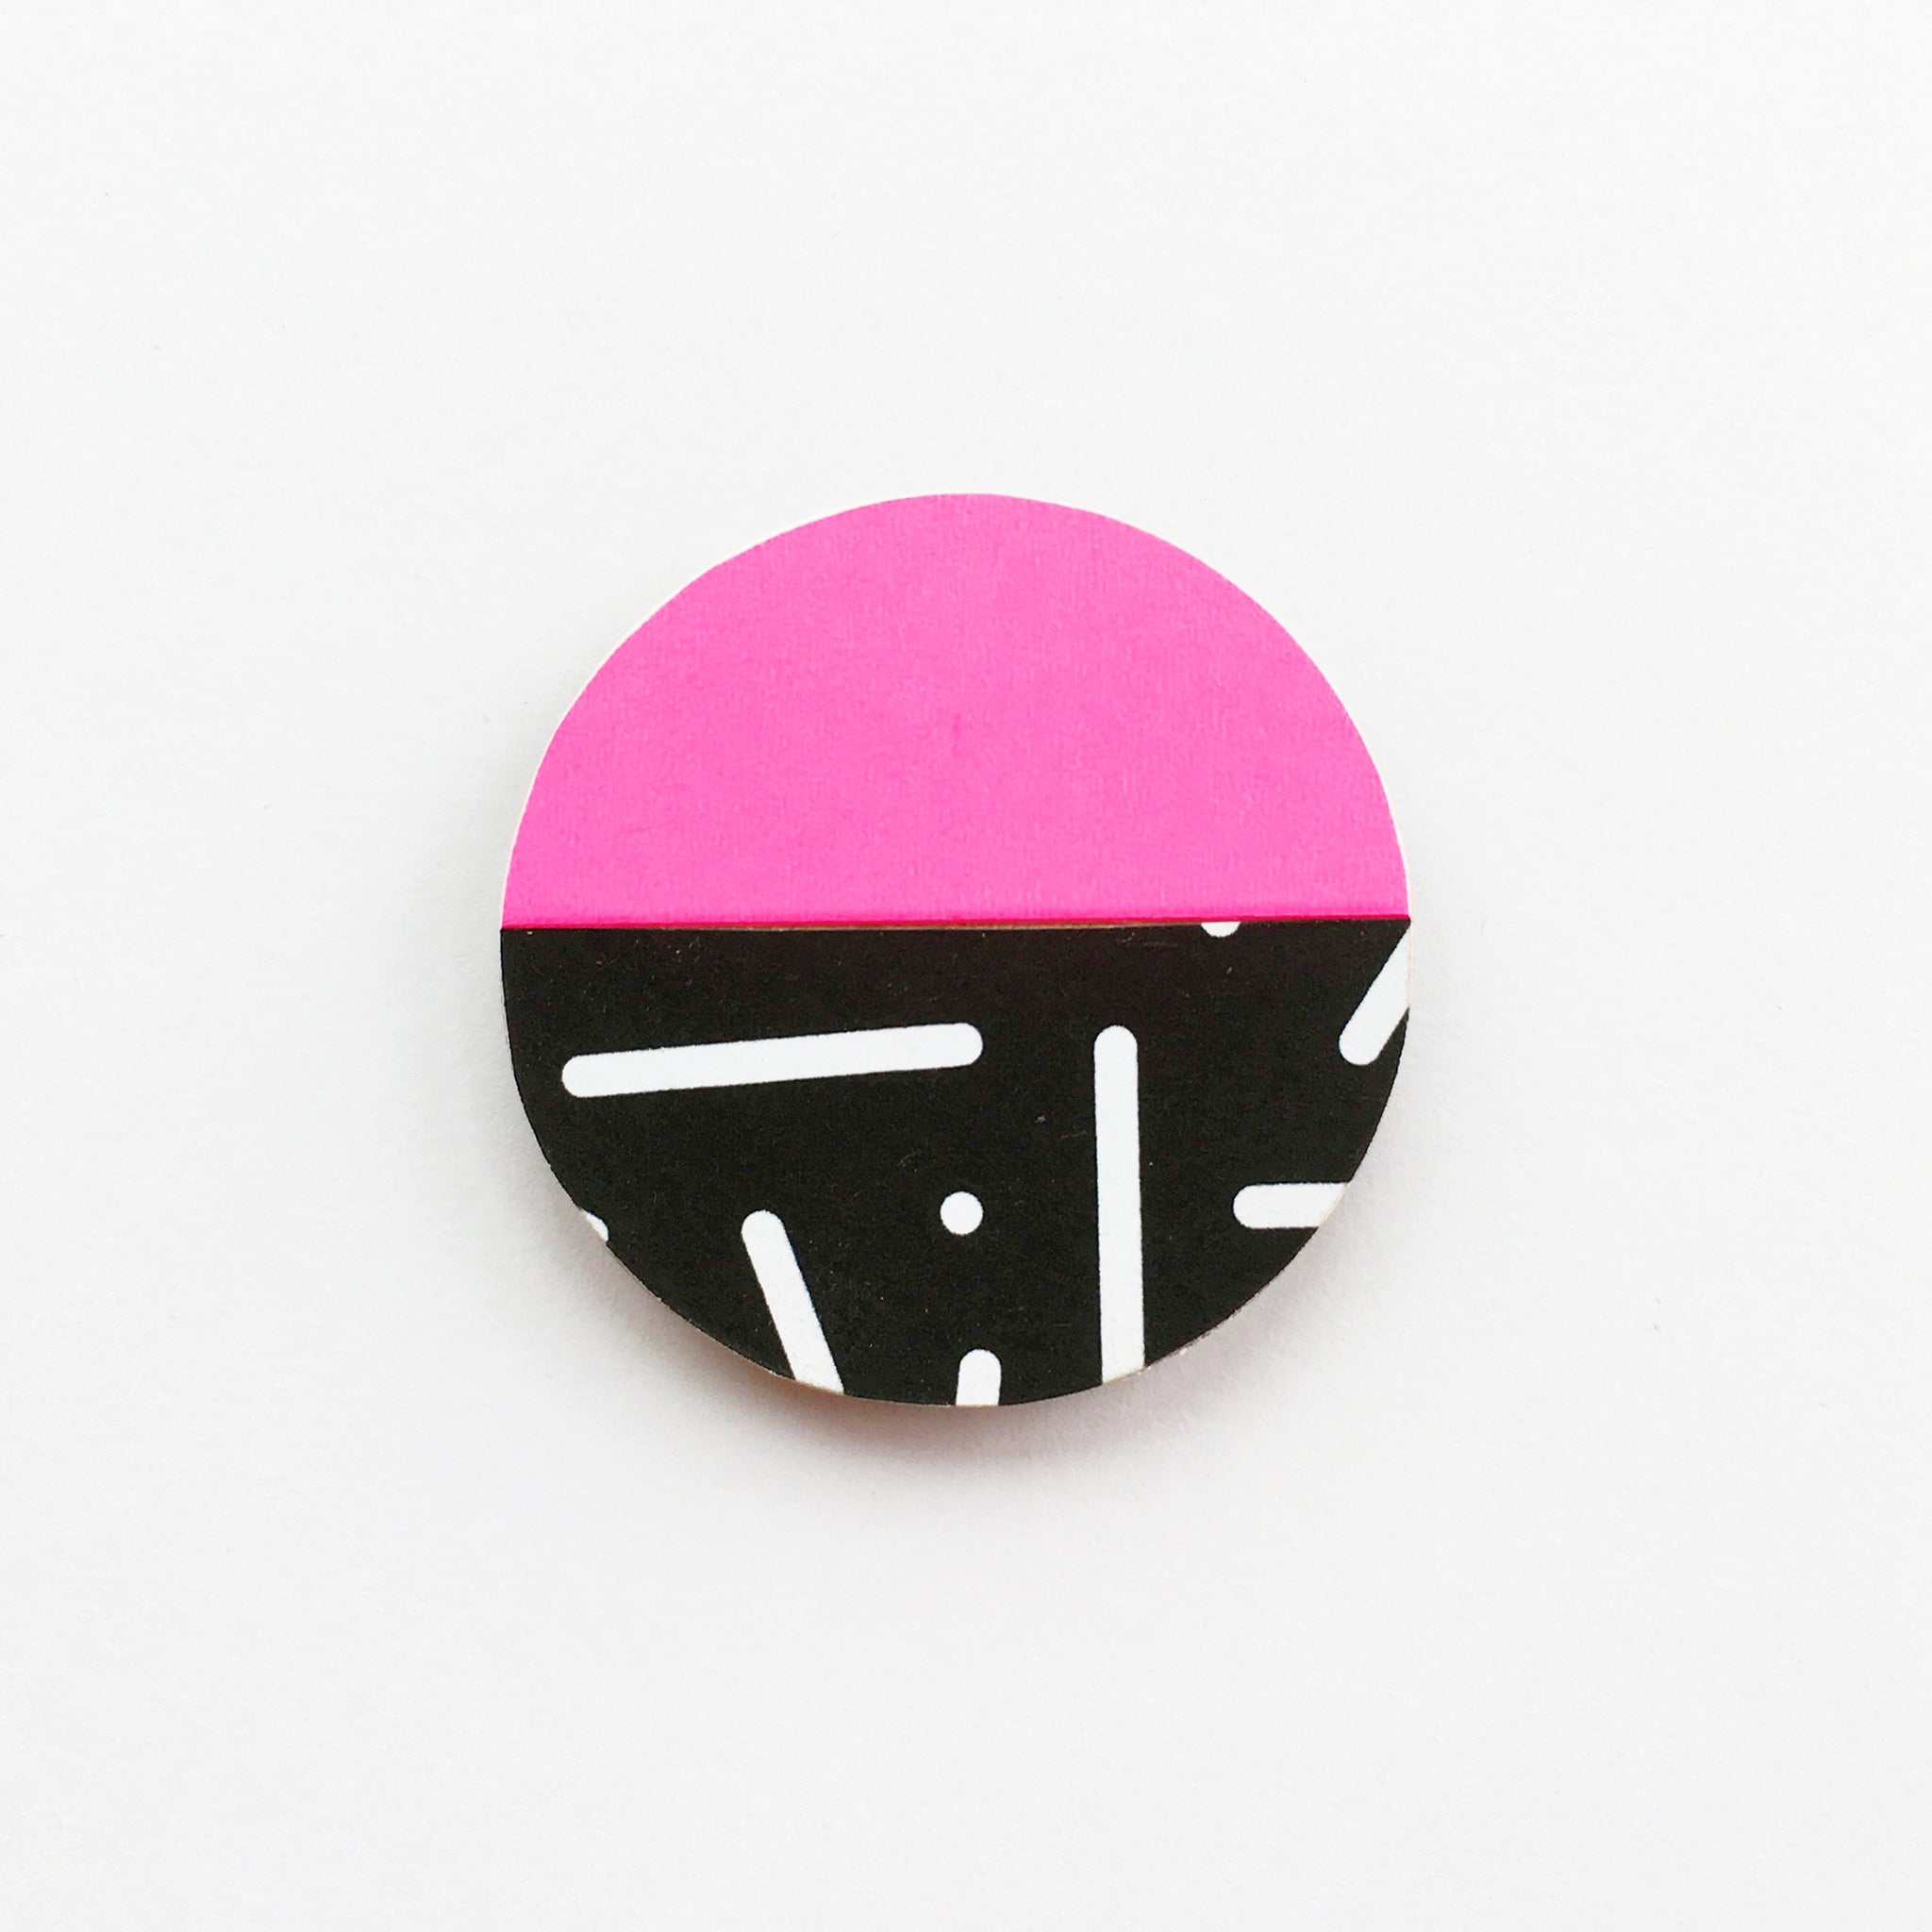 Neon Pink and Black Sprinkles Wood Brooch